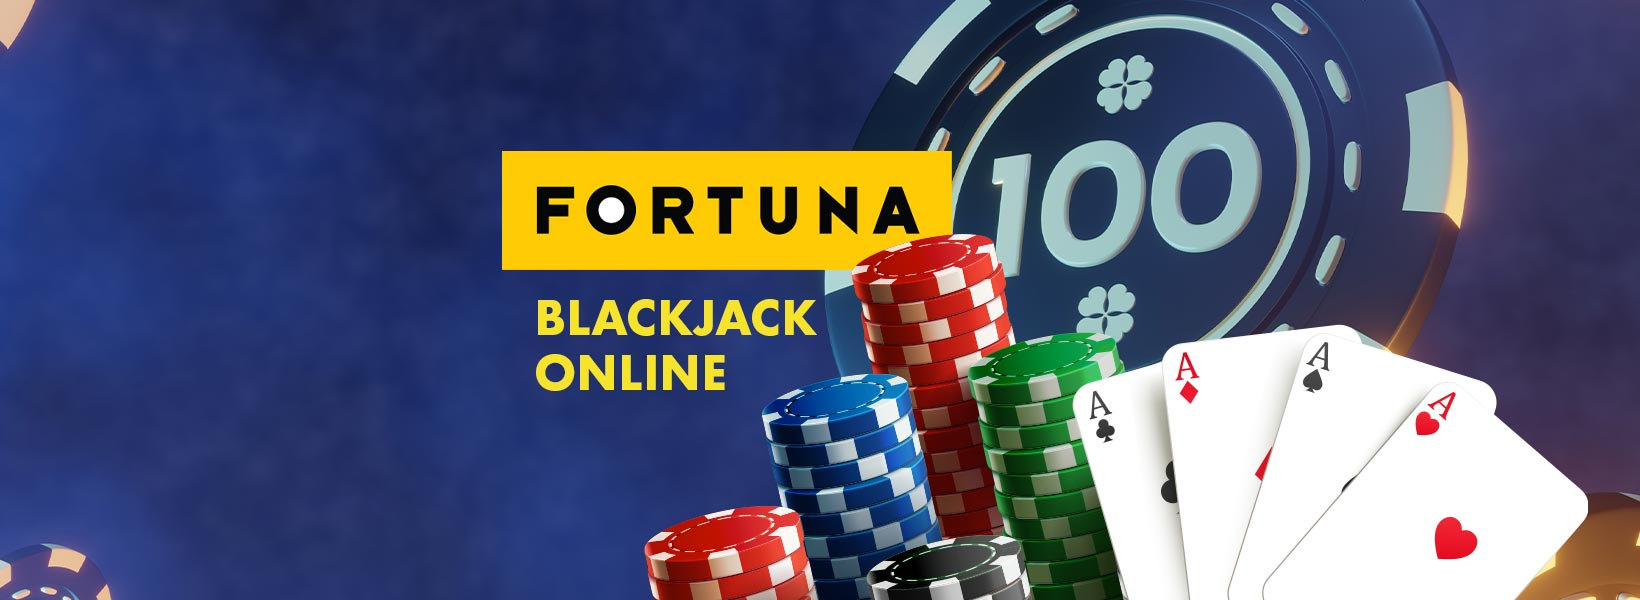 fortuna blackjack